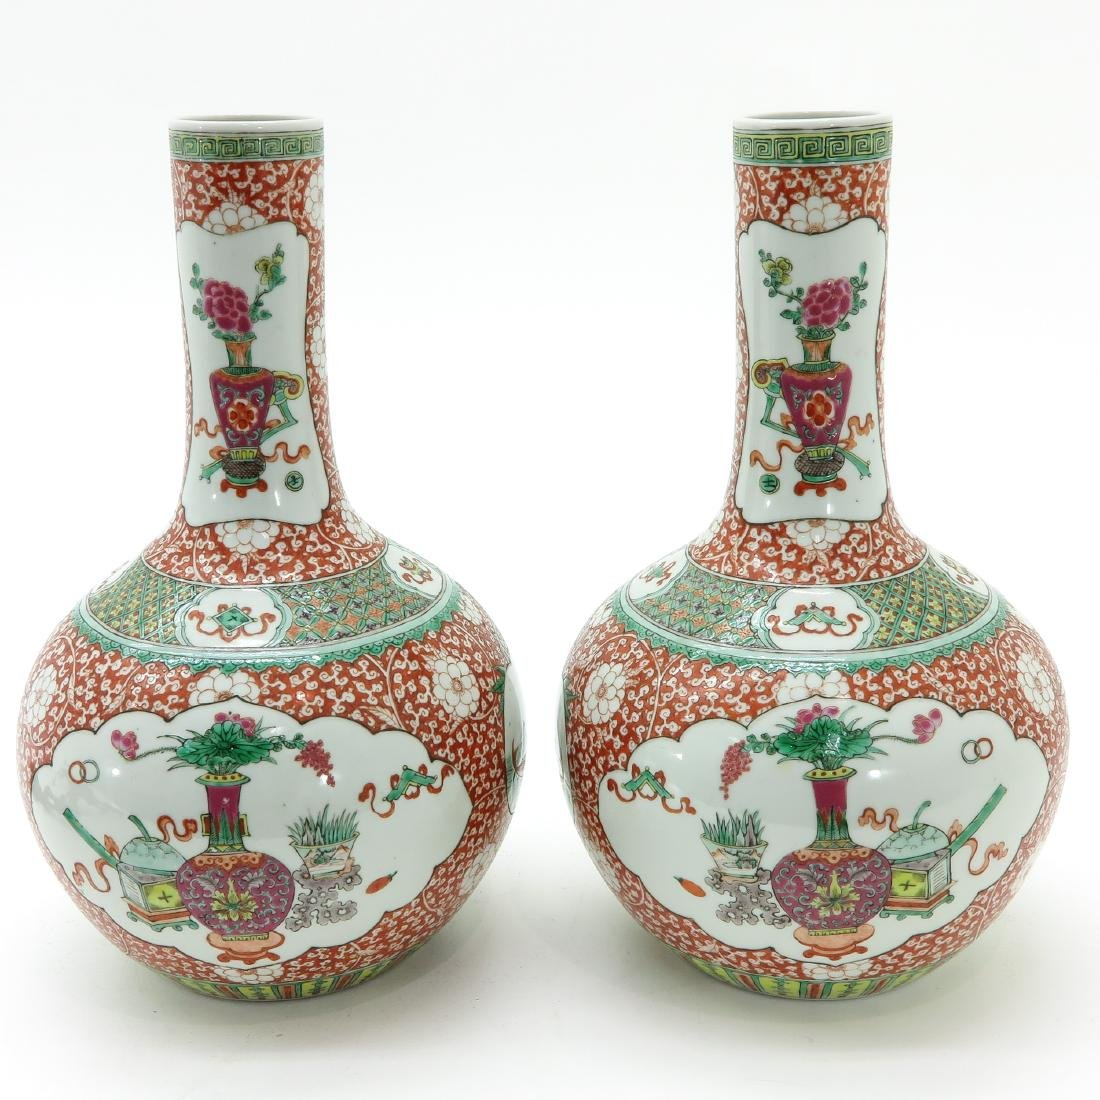 A Pair of Famille Verte Decor Bottle Vases